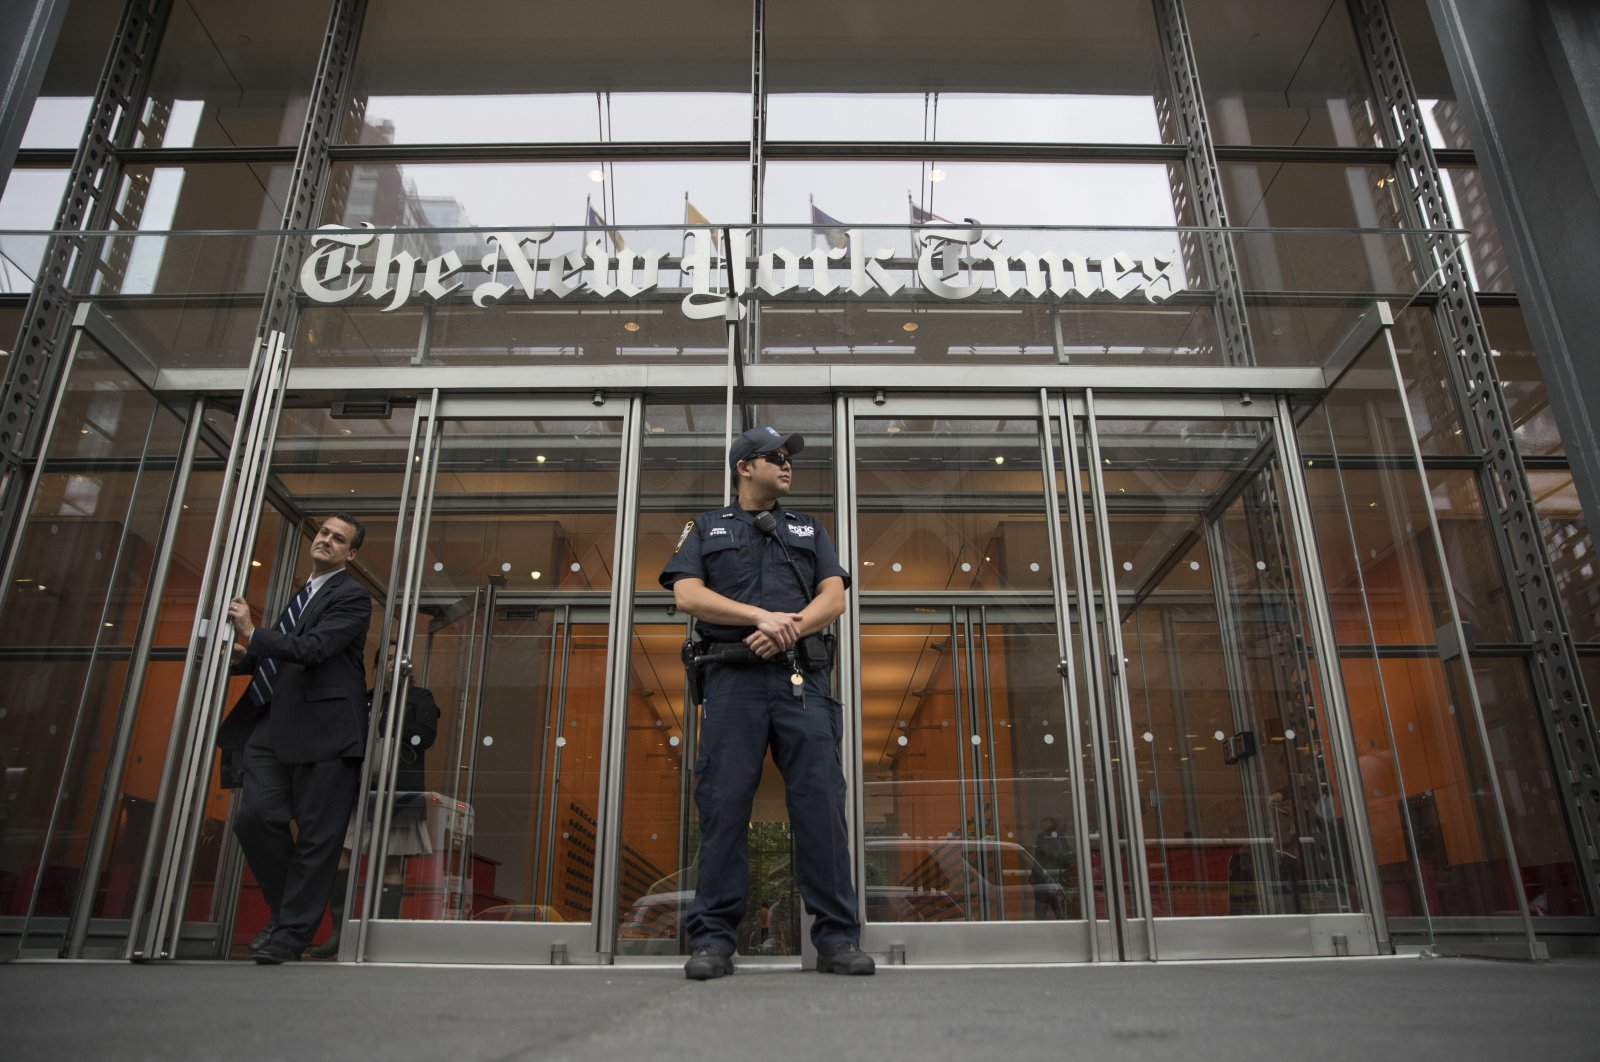 A police officer stands outside The New York Times building in New York, Wednesday, June 2, 2021, the U.S. (AP / Mary Altaffer)